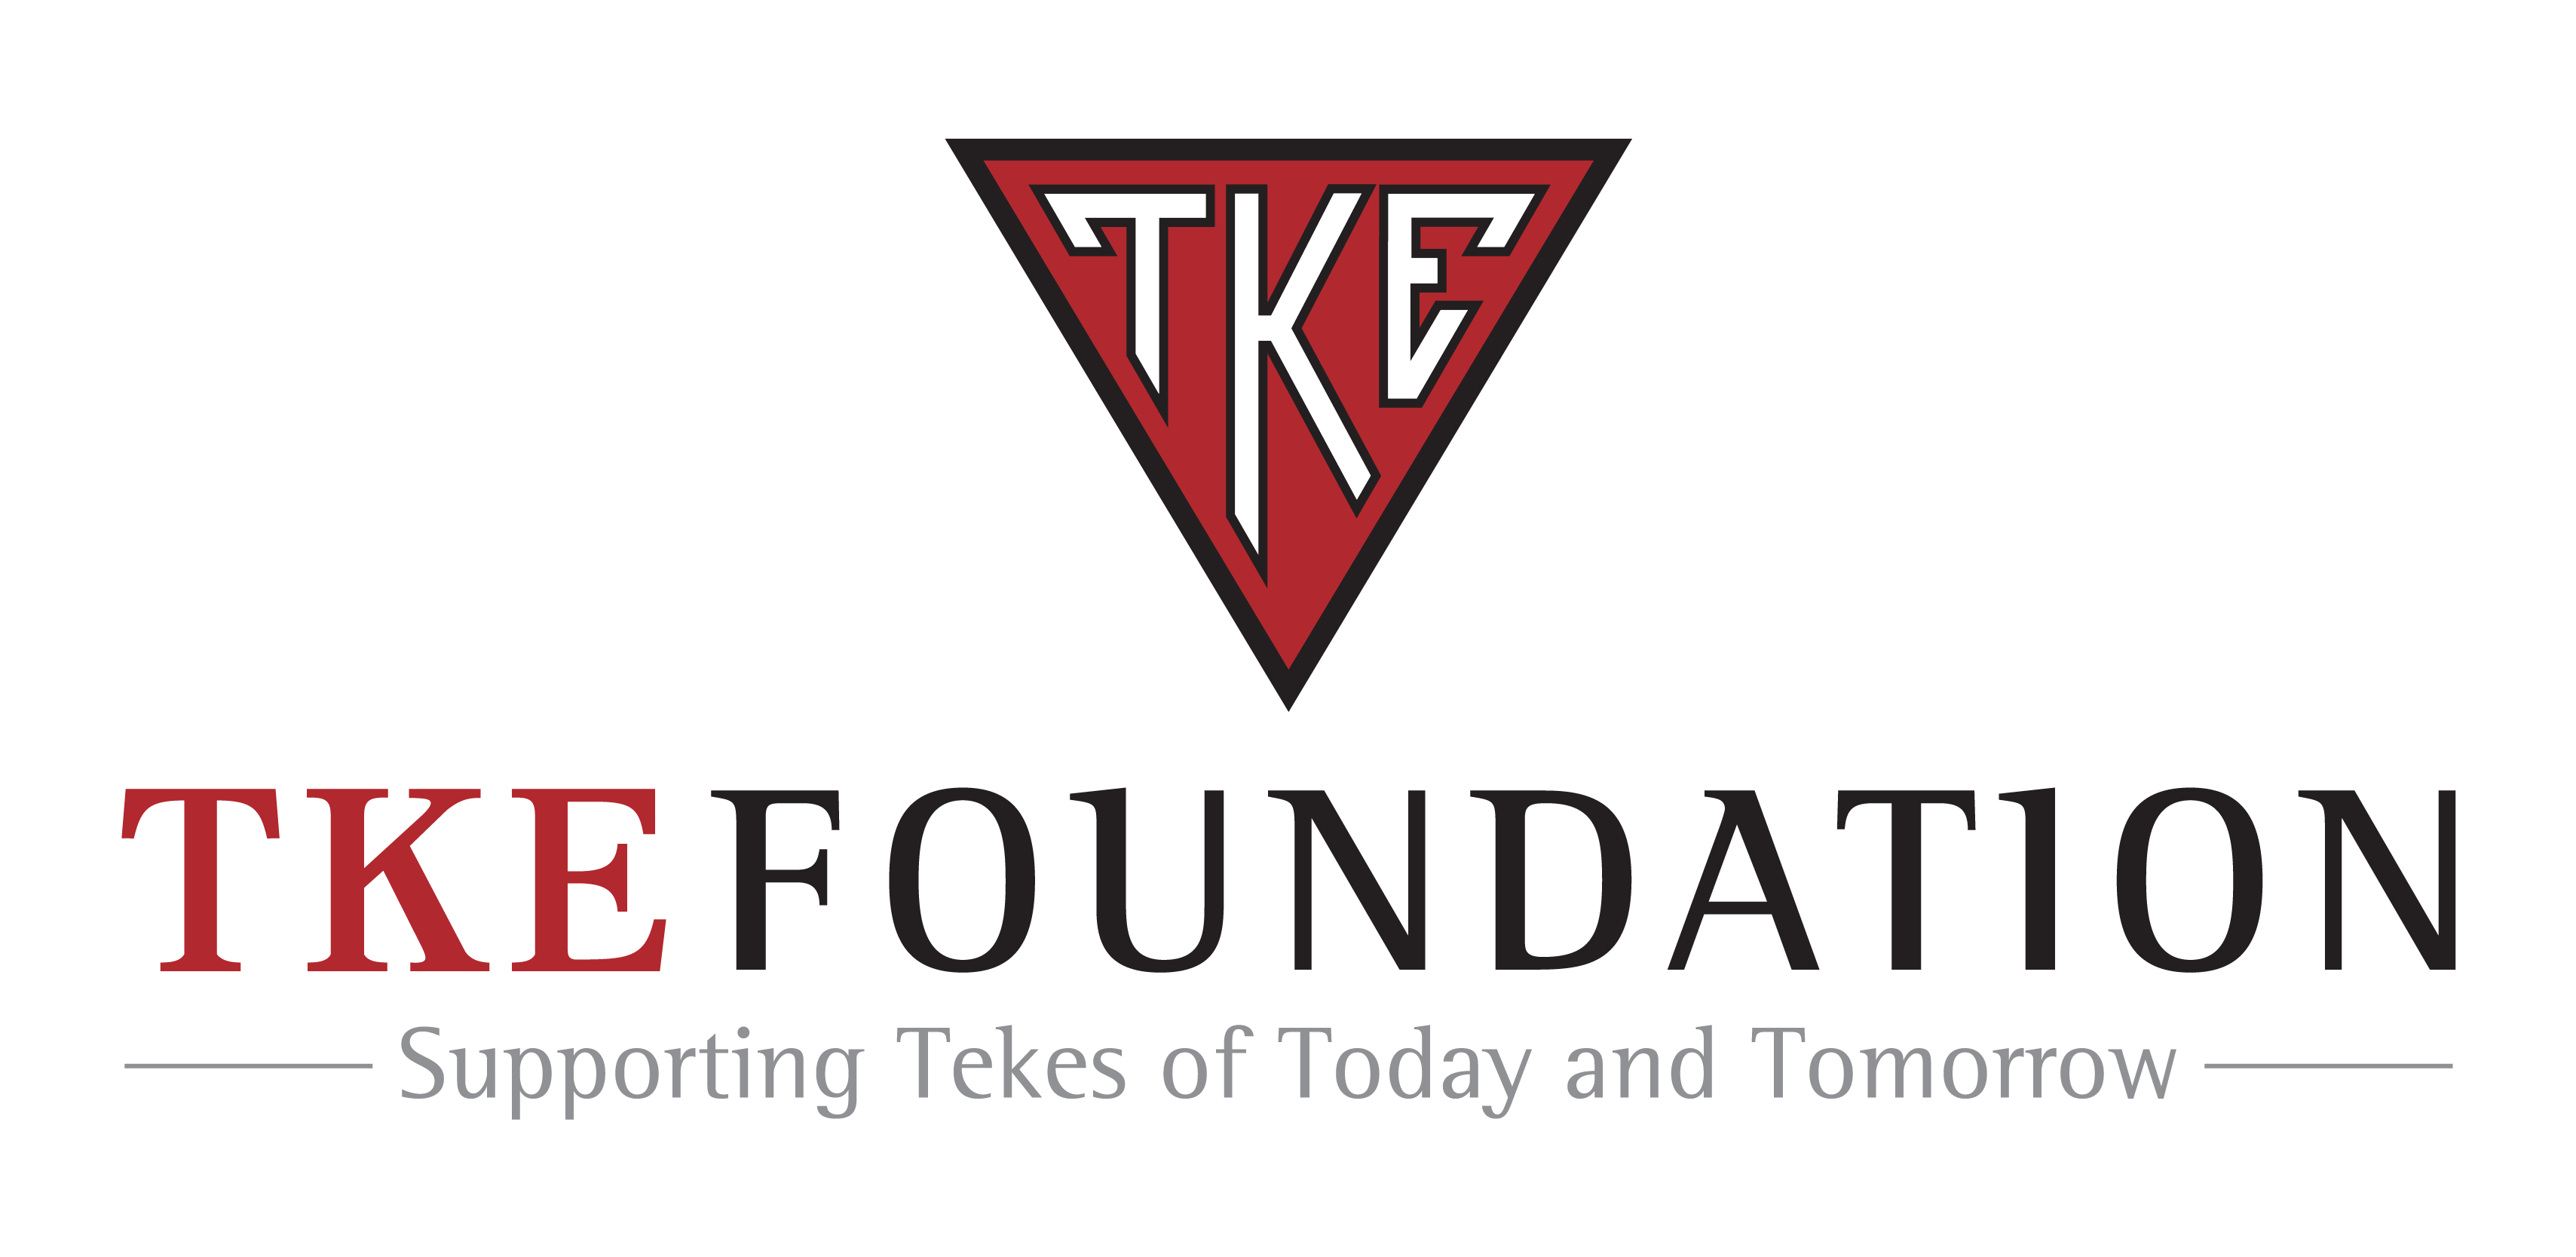 TKE HQ Staircase and CEO Office Named After Beta-Sigma Tekes